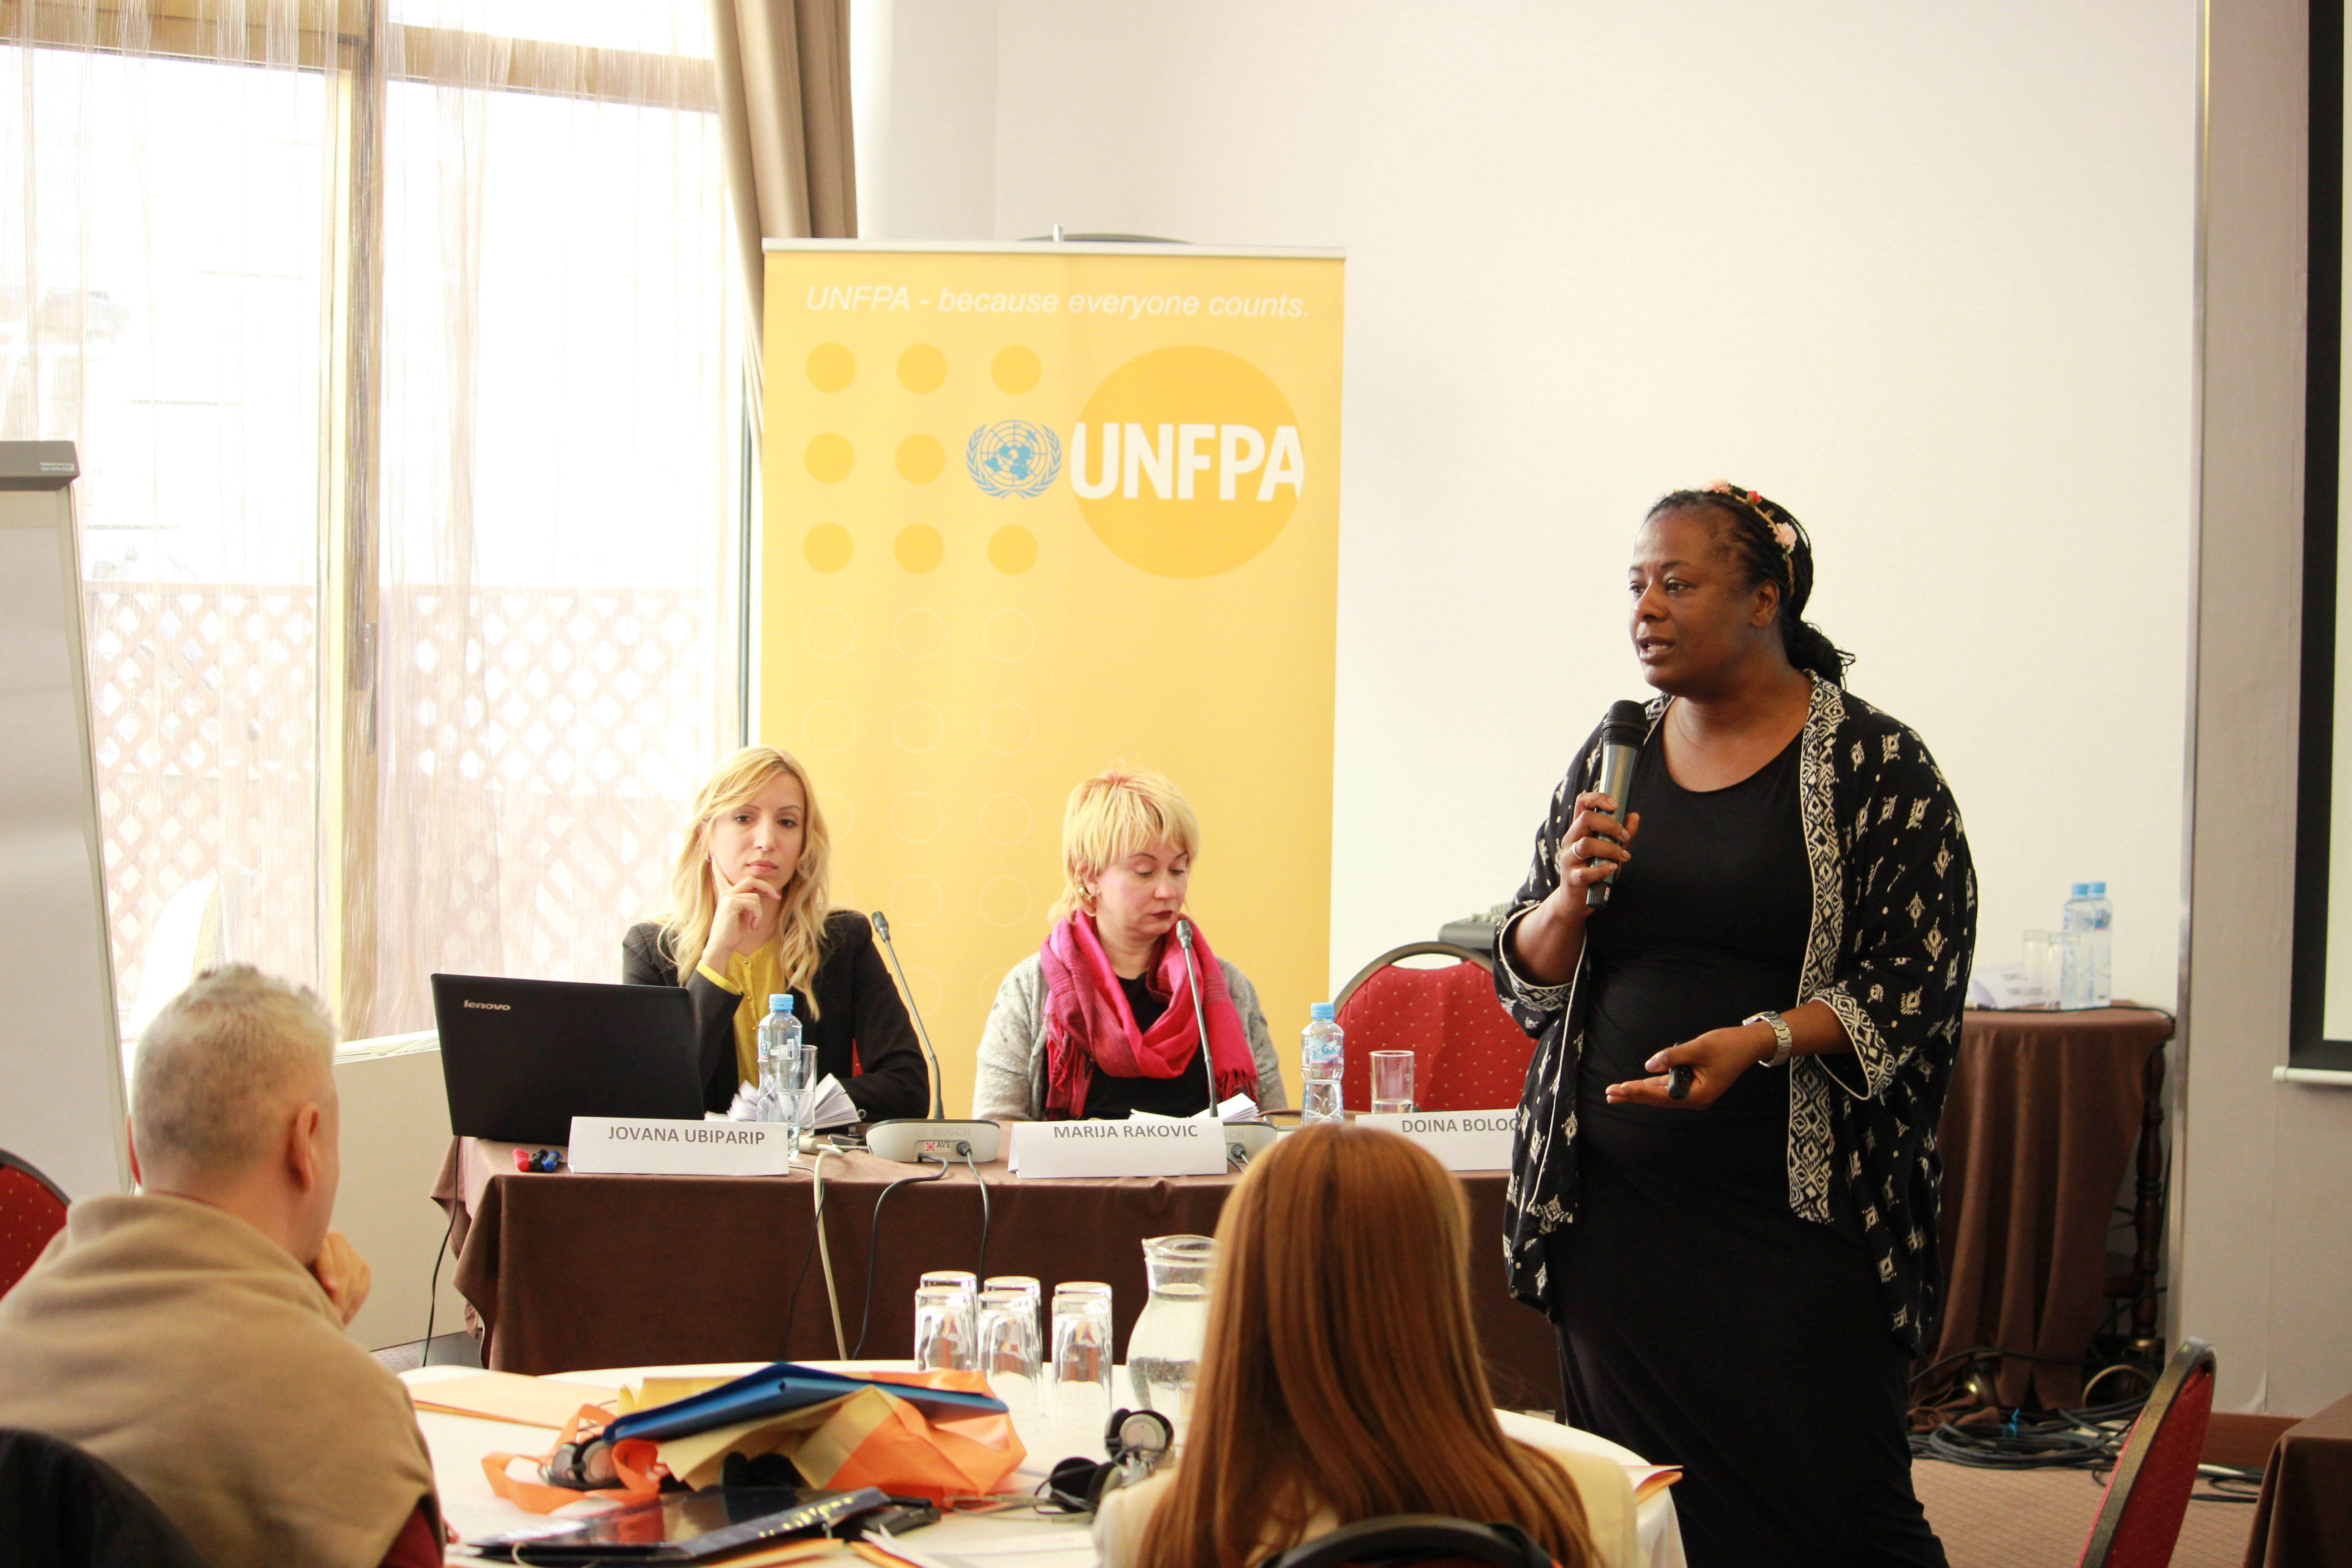 NGO Atina, UNFPA's regional initiative, Gender Based Violence, human trafficking